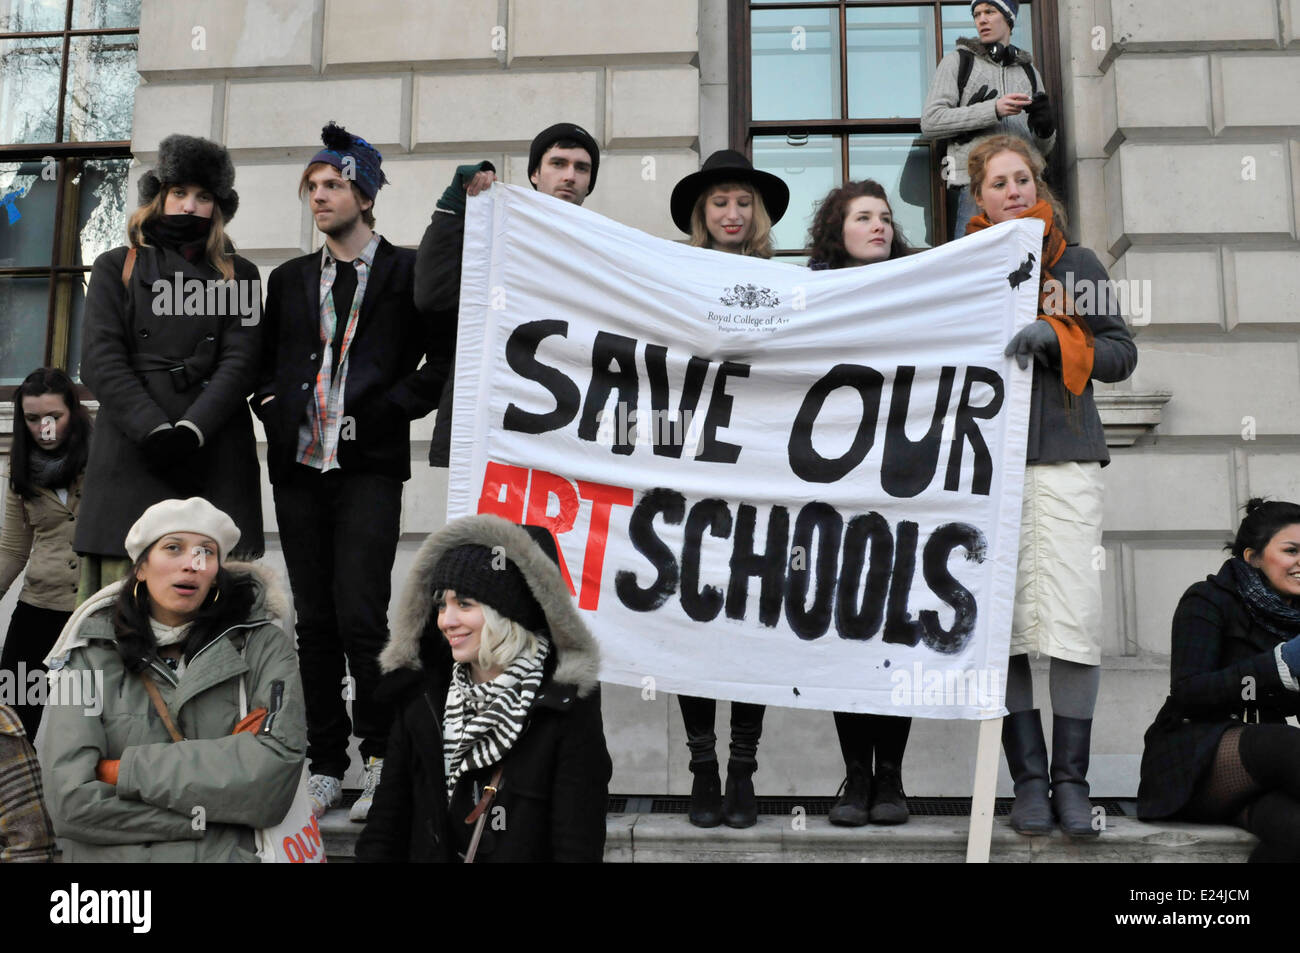 Student protesters holding a banner reading 'save our art schools', central London, UK - Stock Image